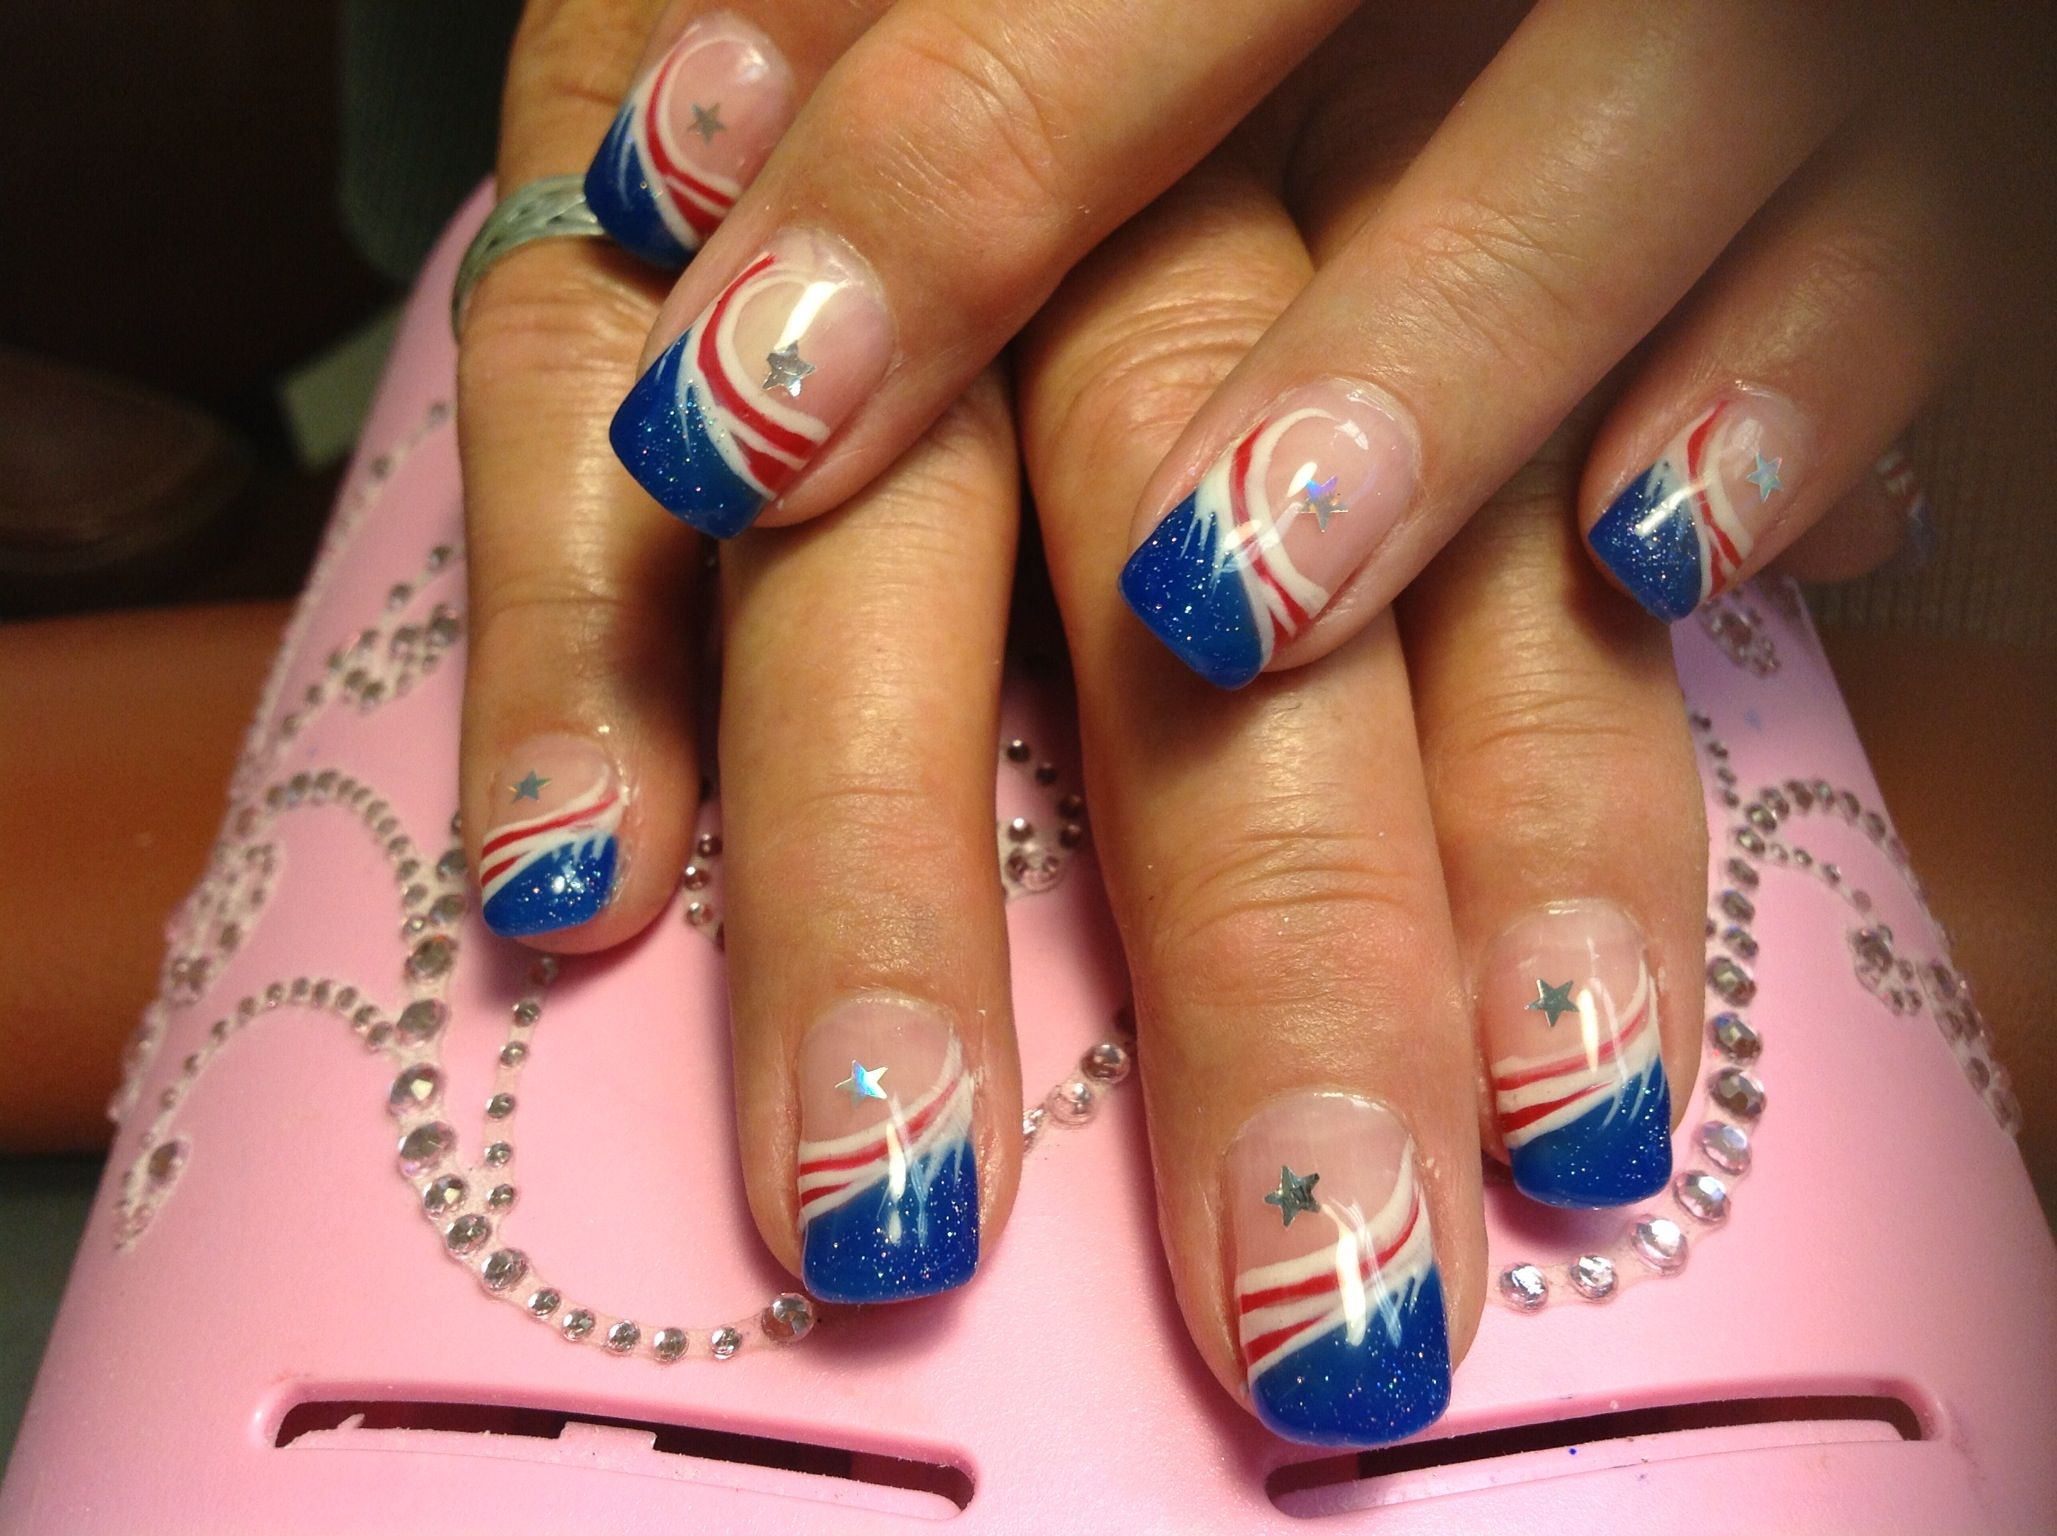 Pin By Ambitions Nail And Hair Studio On 4th Of July Patriotic Nails Design Usa Nails Red Nails